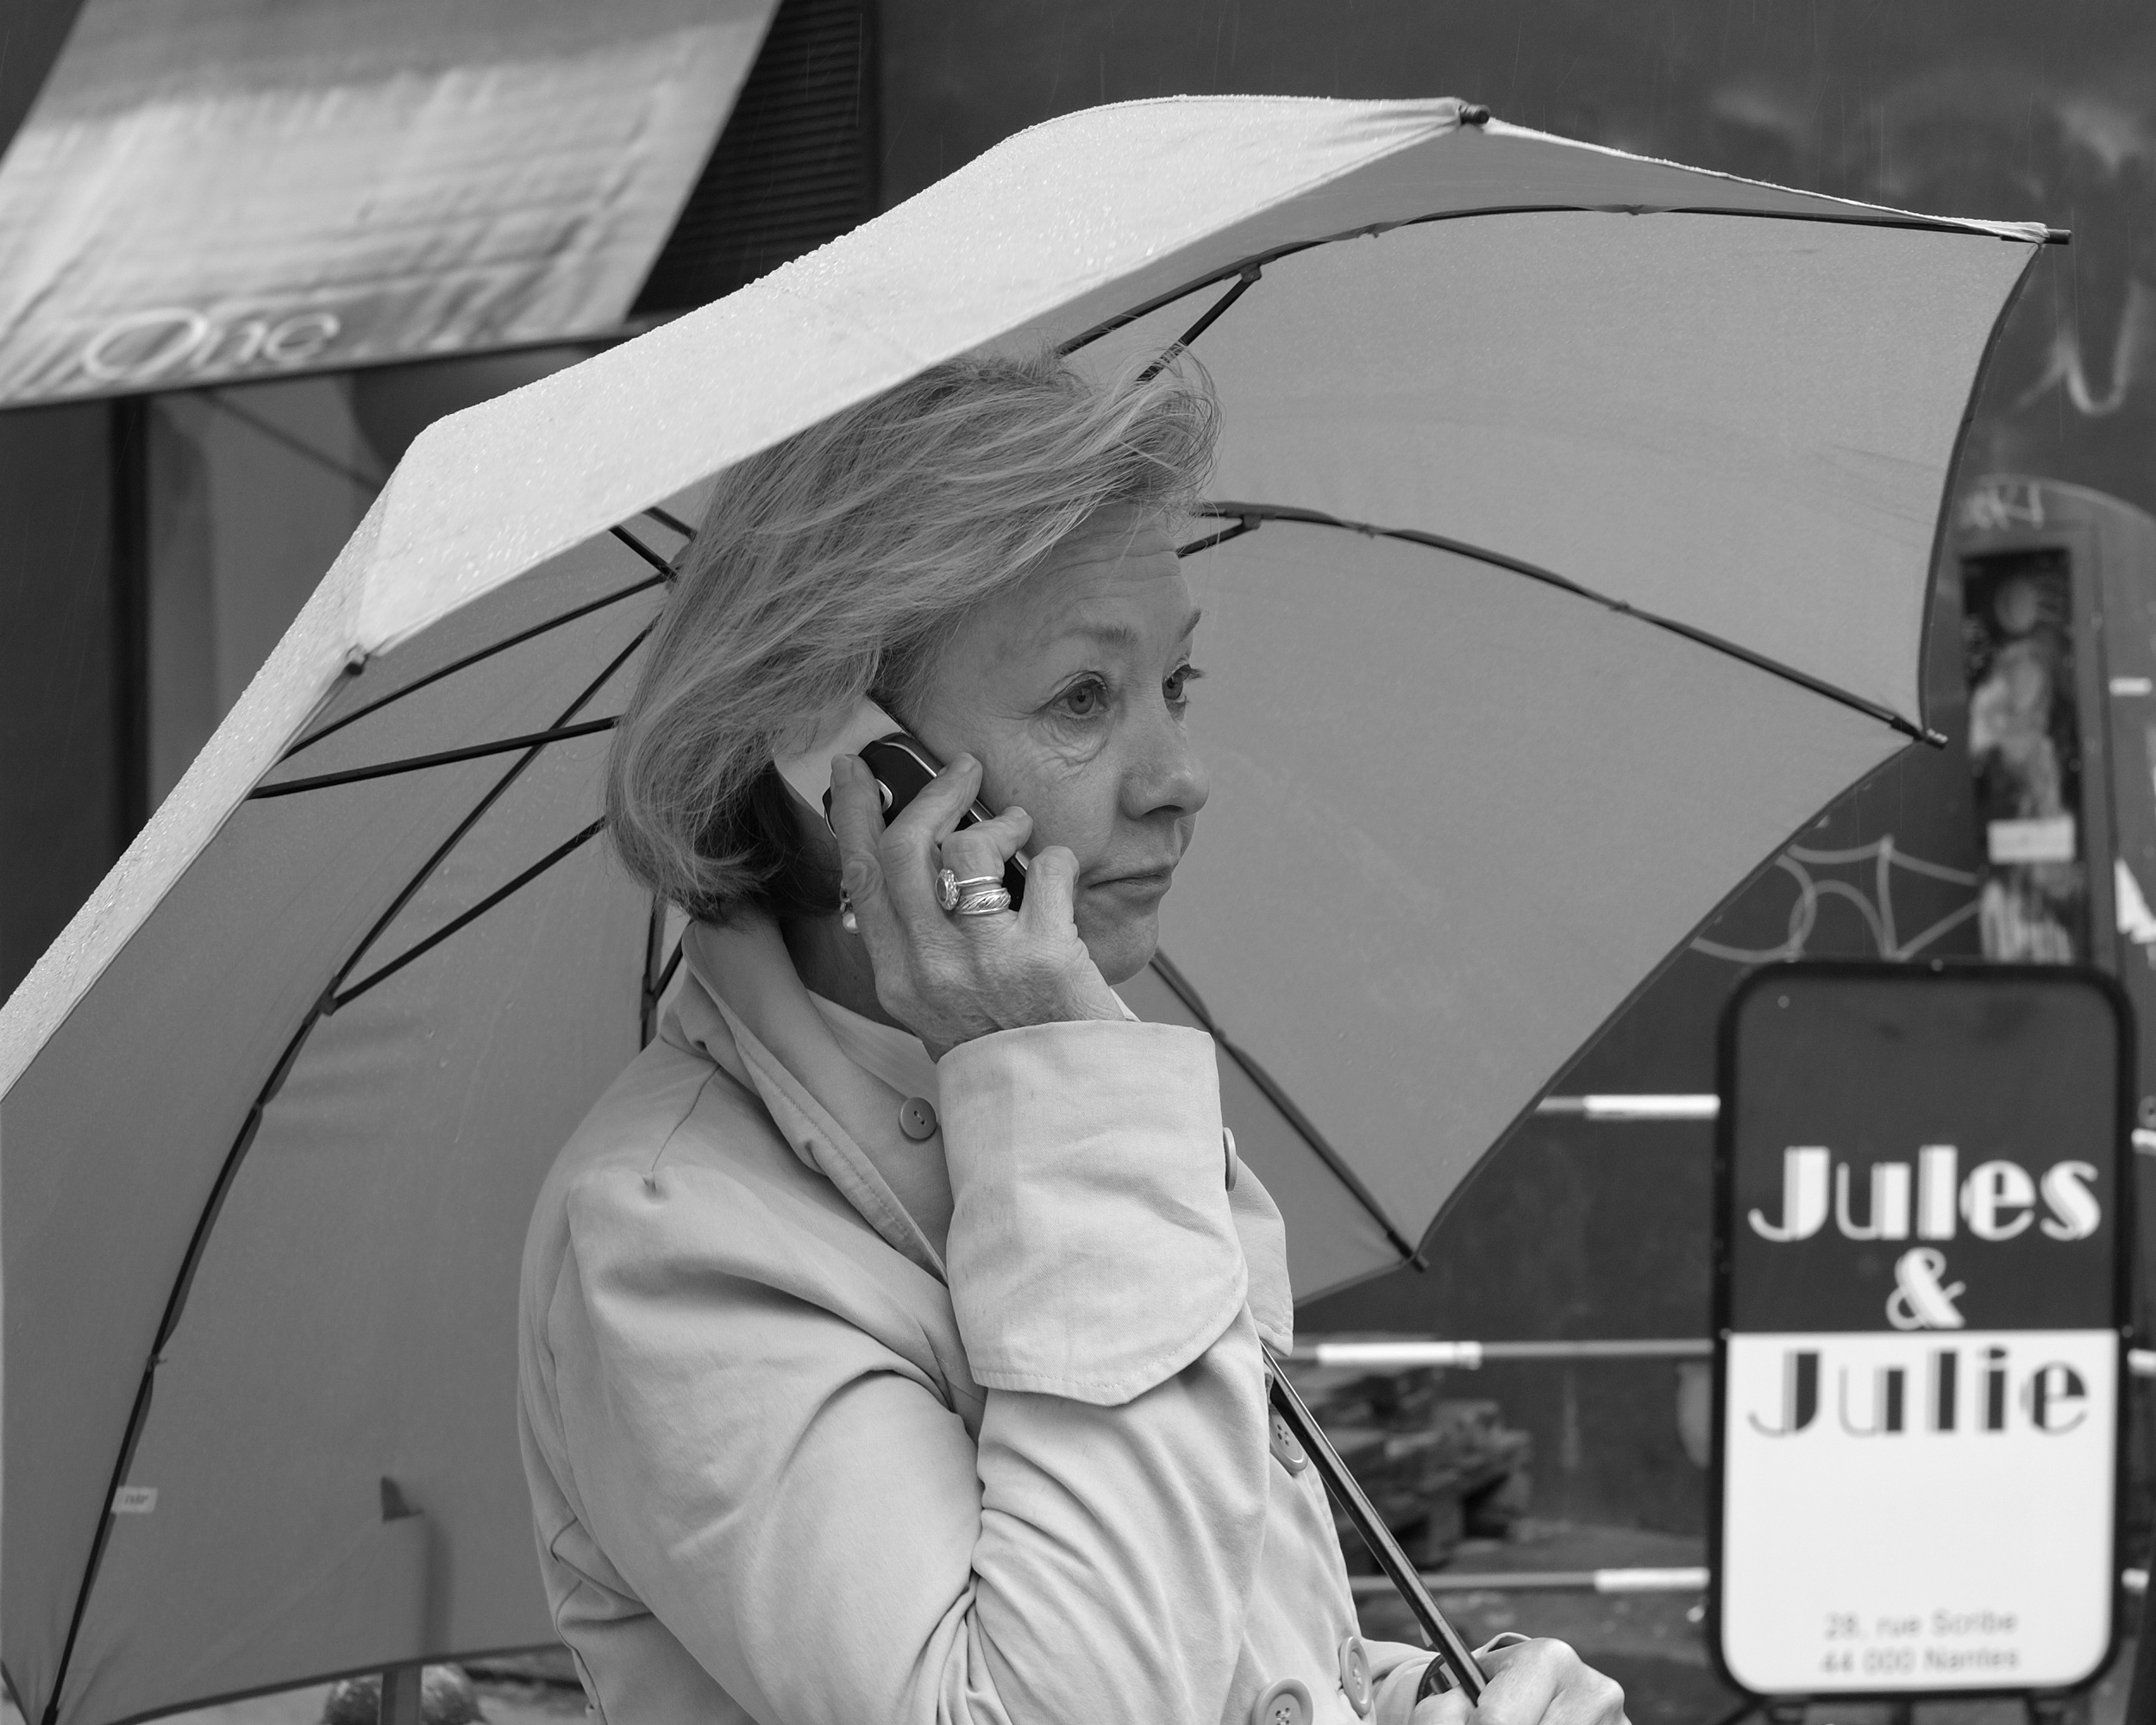 Woman walking with phone and umbrella in Nantes - Fuji X-Pro1